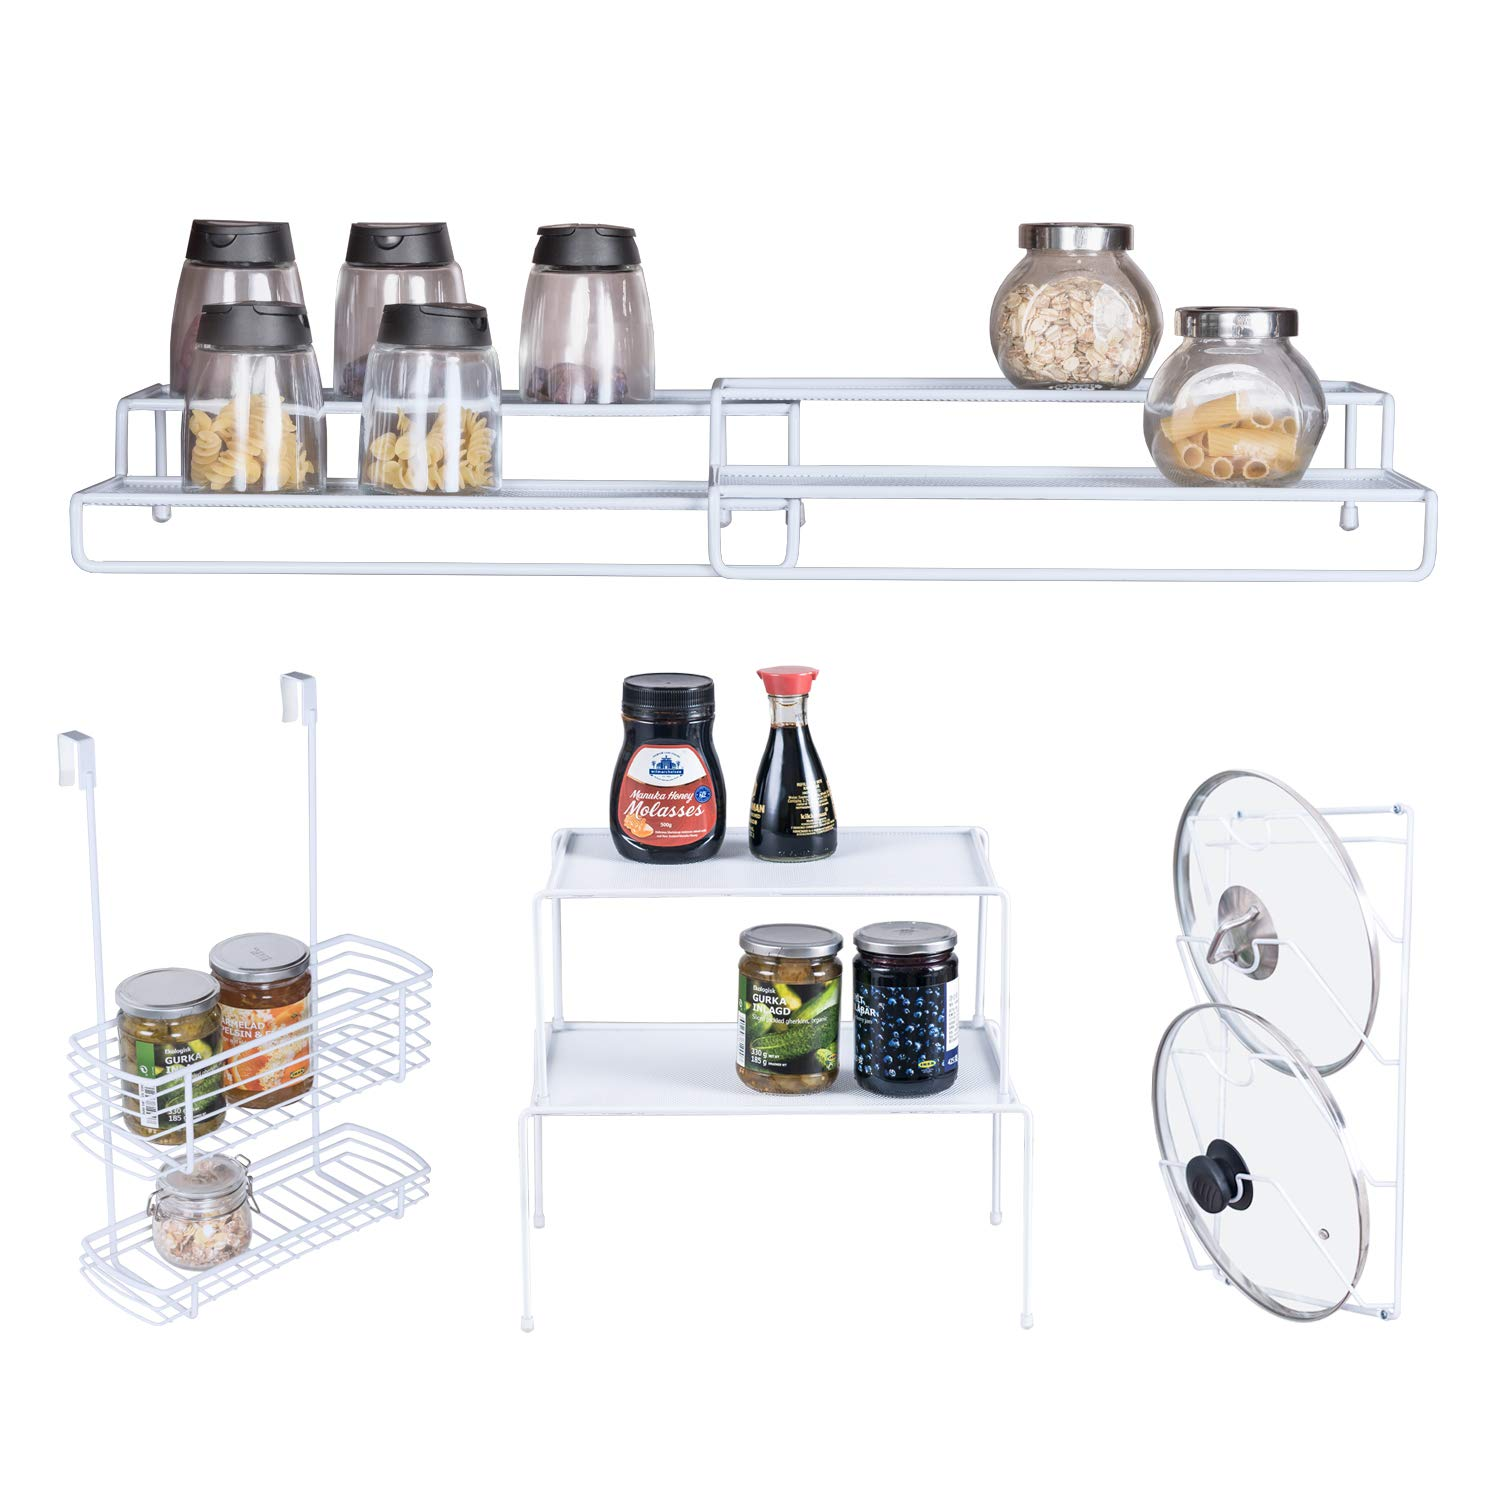 A great way to maximize space in a kitchen cabinet!